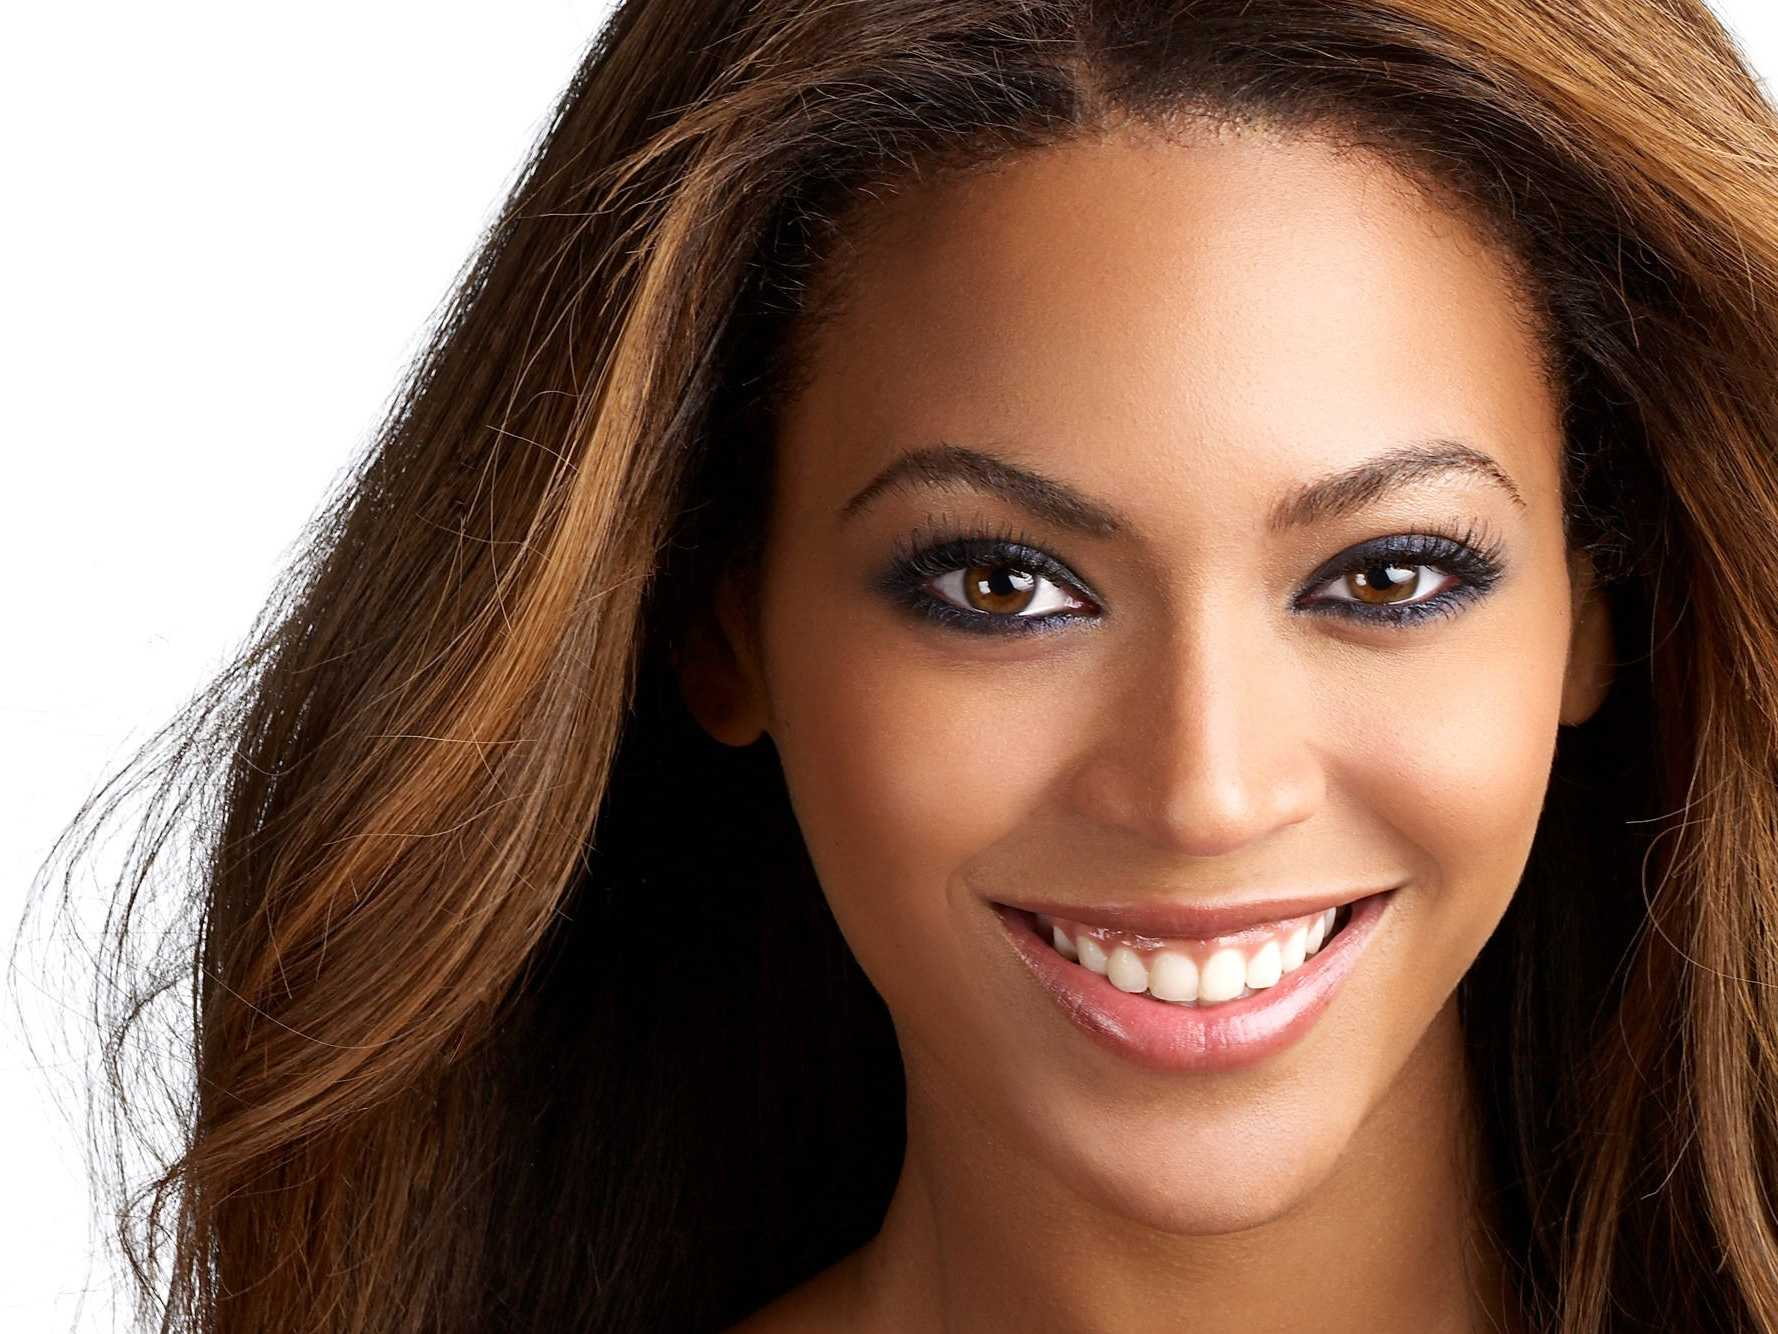 Beyonce Drops New Track, God Made You Beautiful